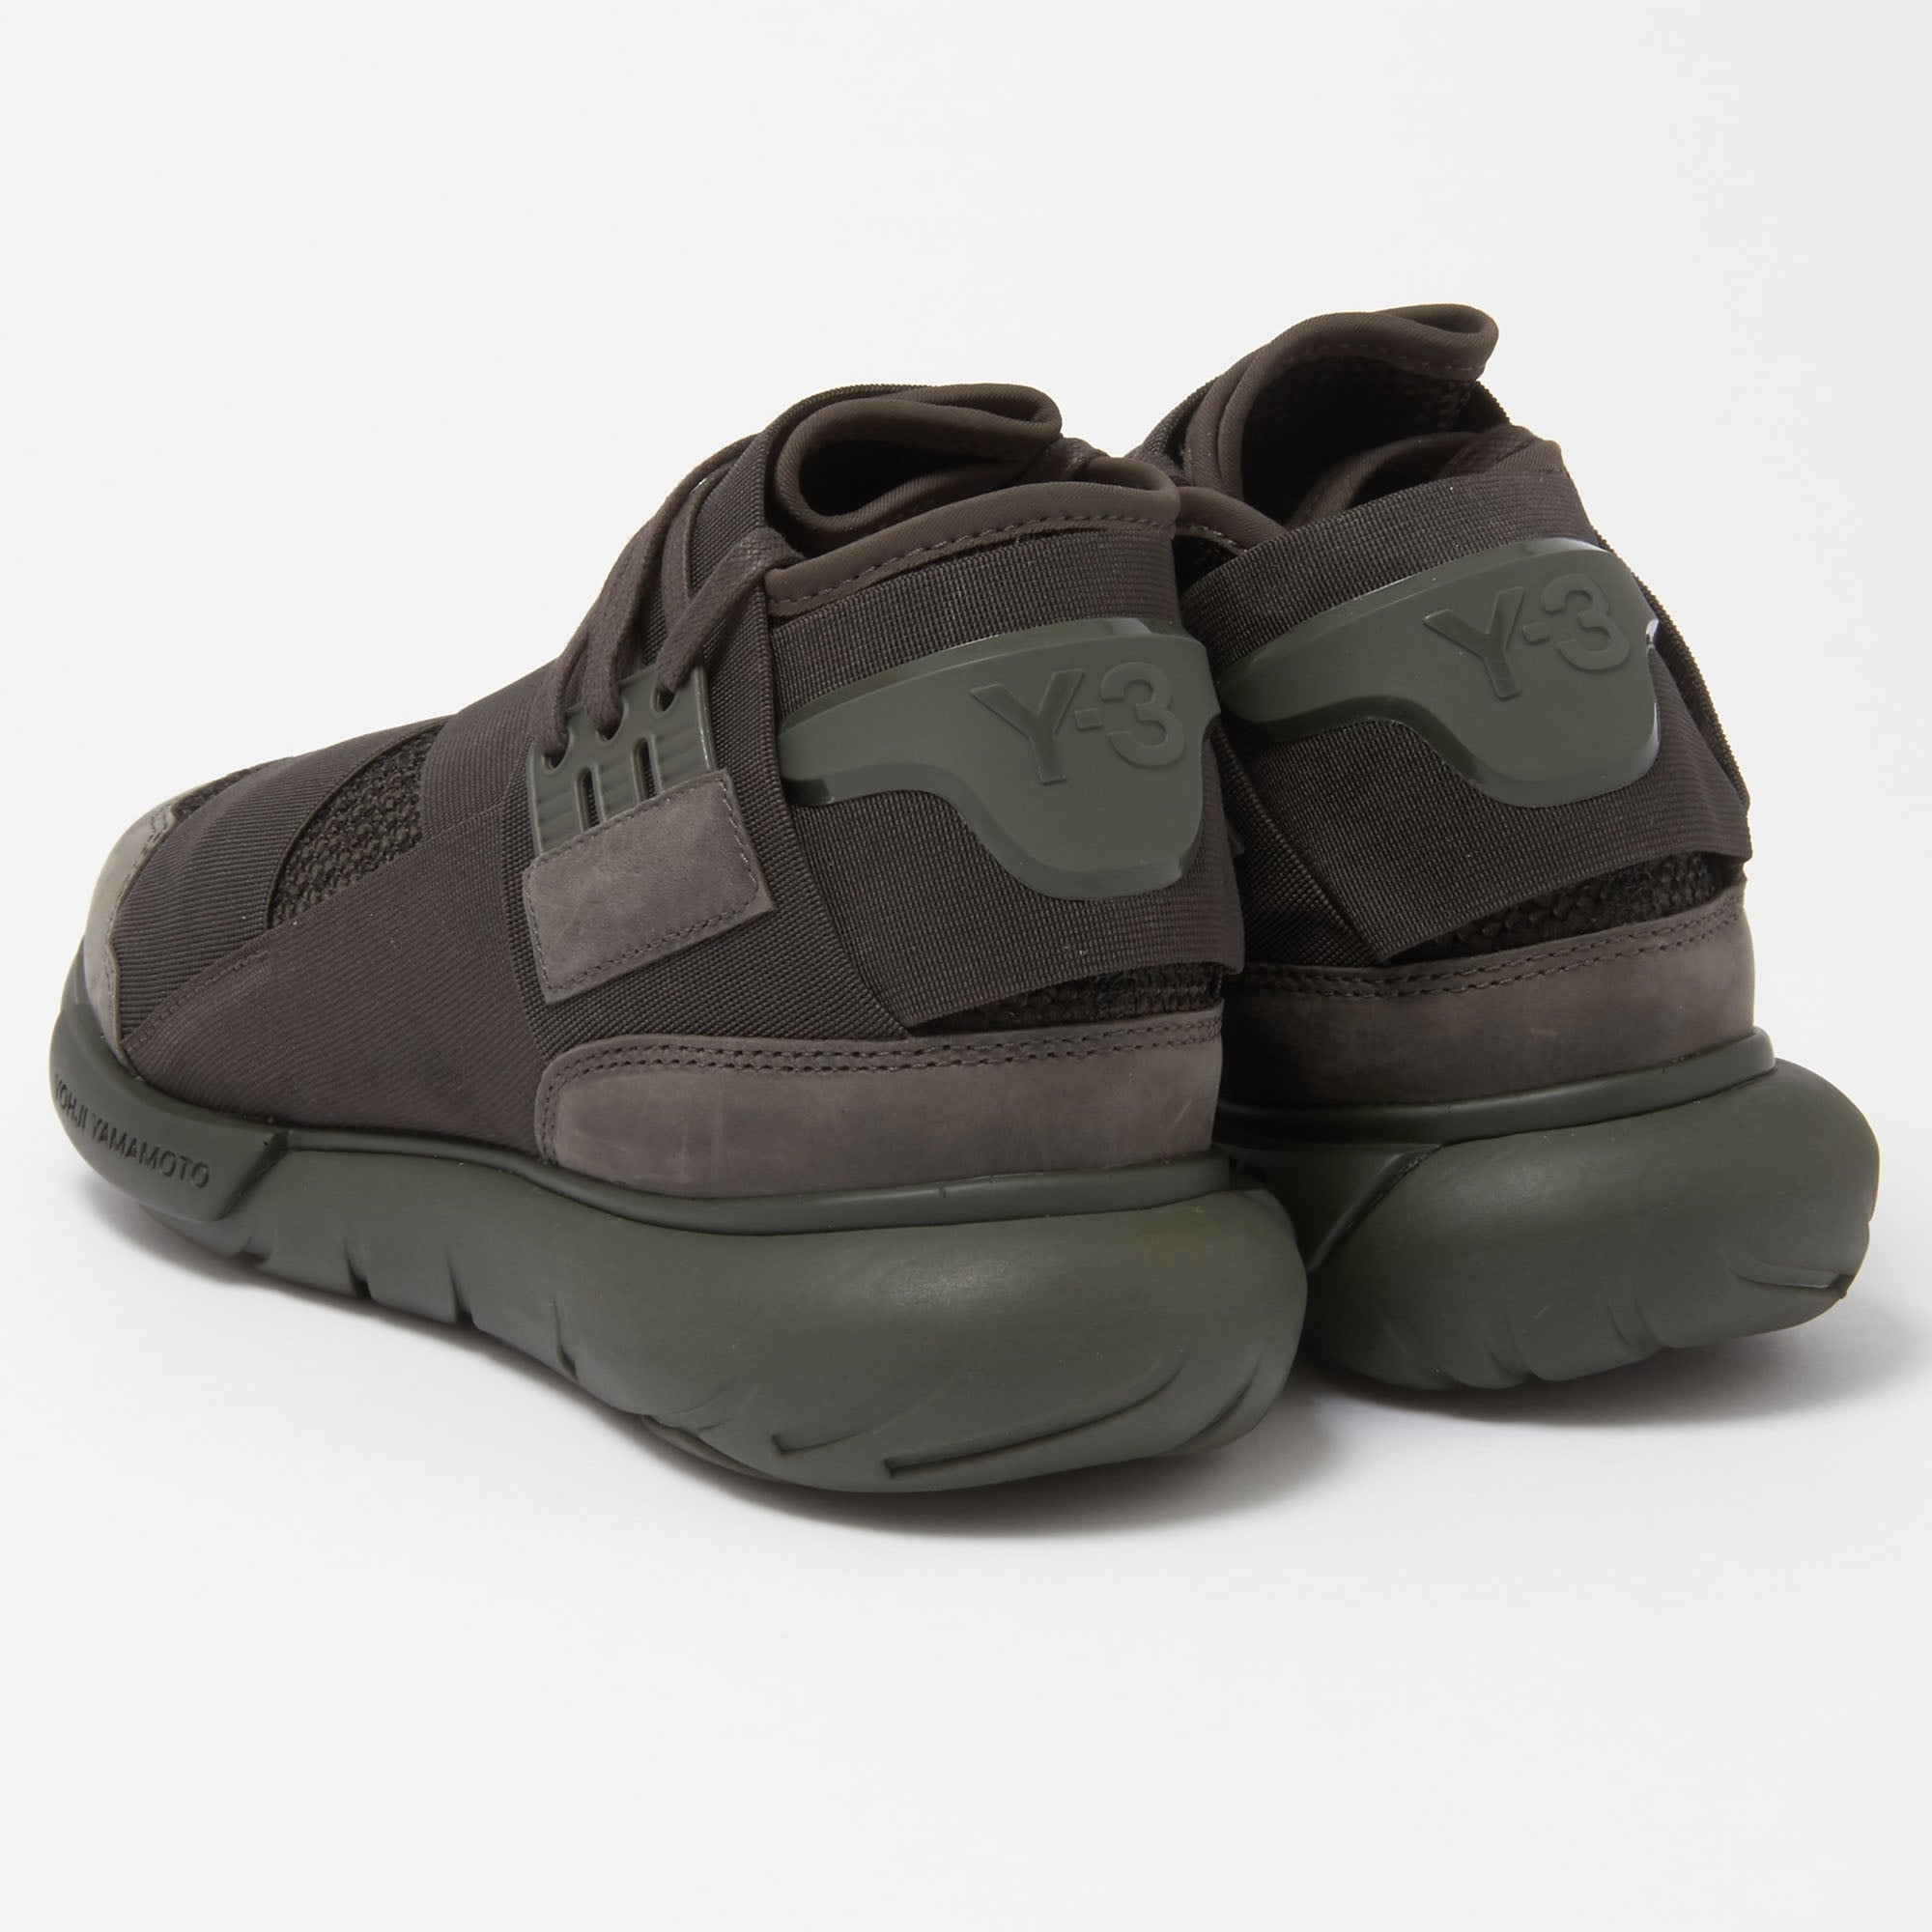 172973572 ... Green Sneakers Adidas Y-3 Qasa High CG3194 · Qasa High Black Olive  Sneakers CG3194 ...